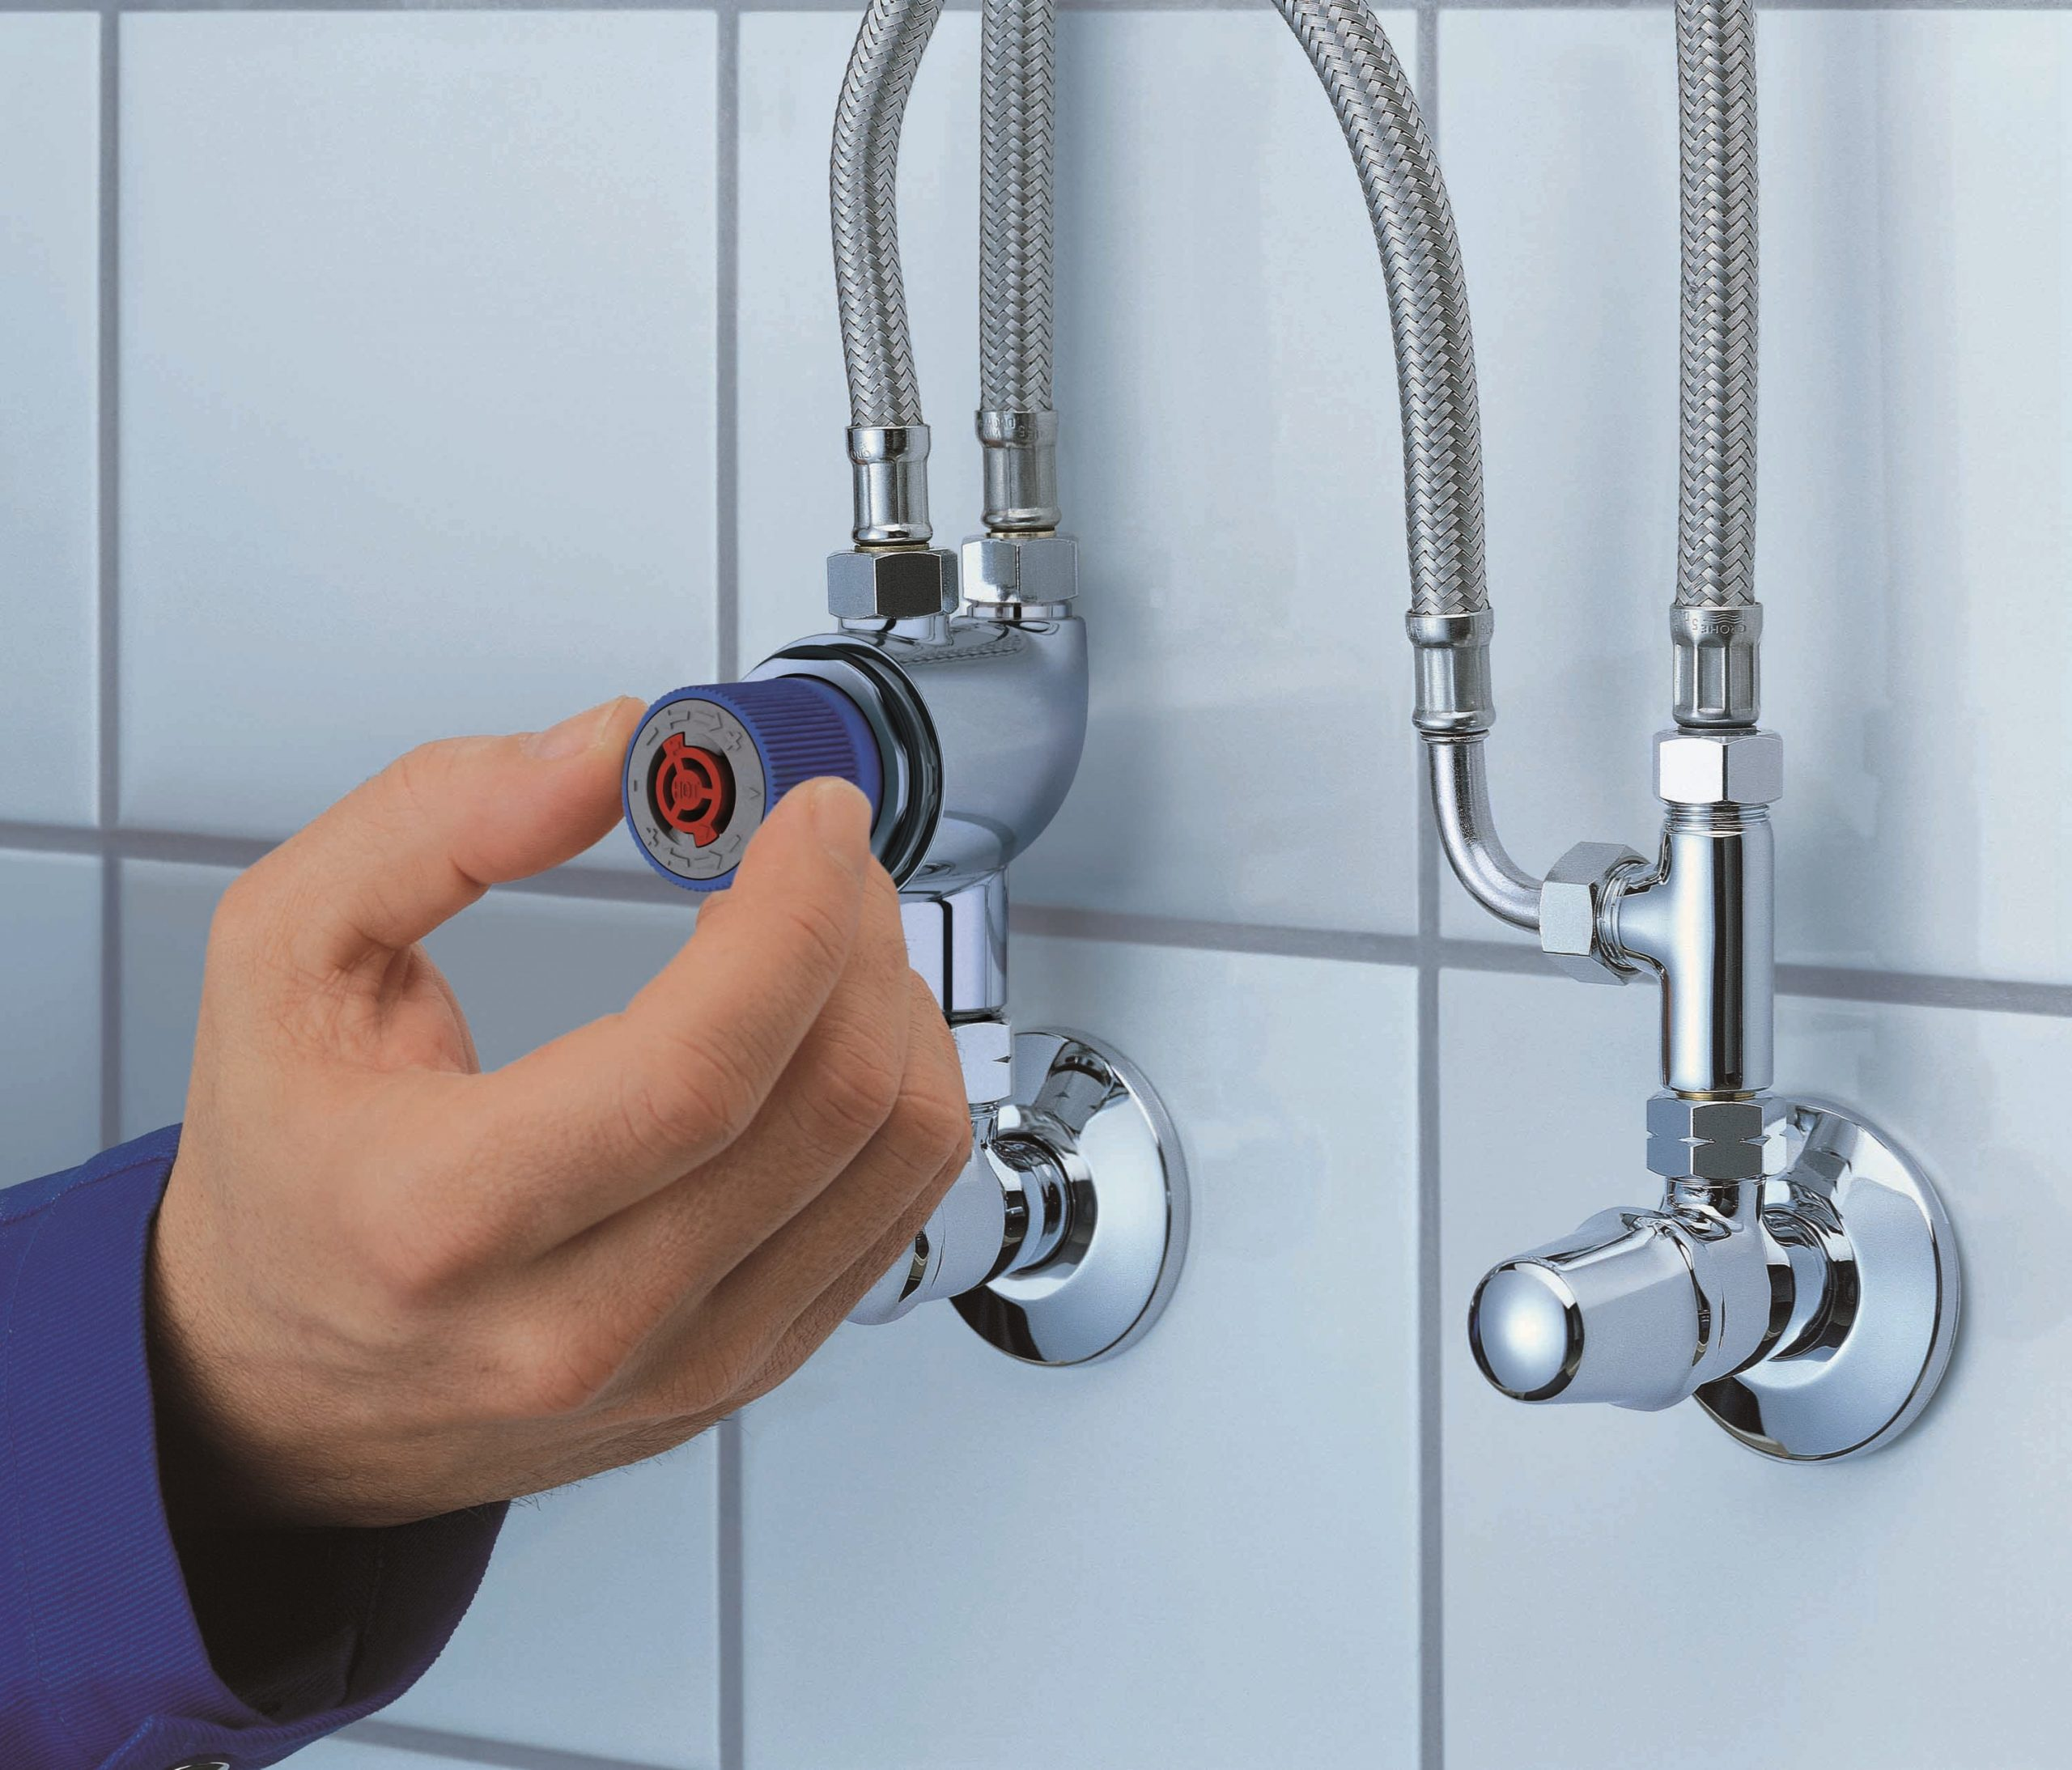 How to have regulated hot water in our bathrooms